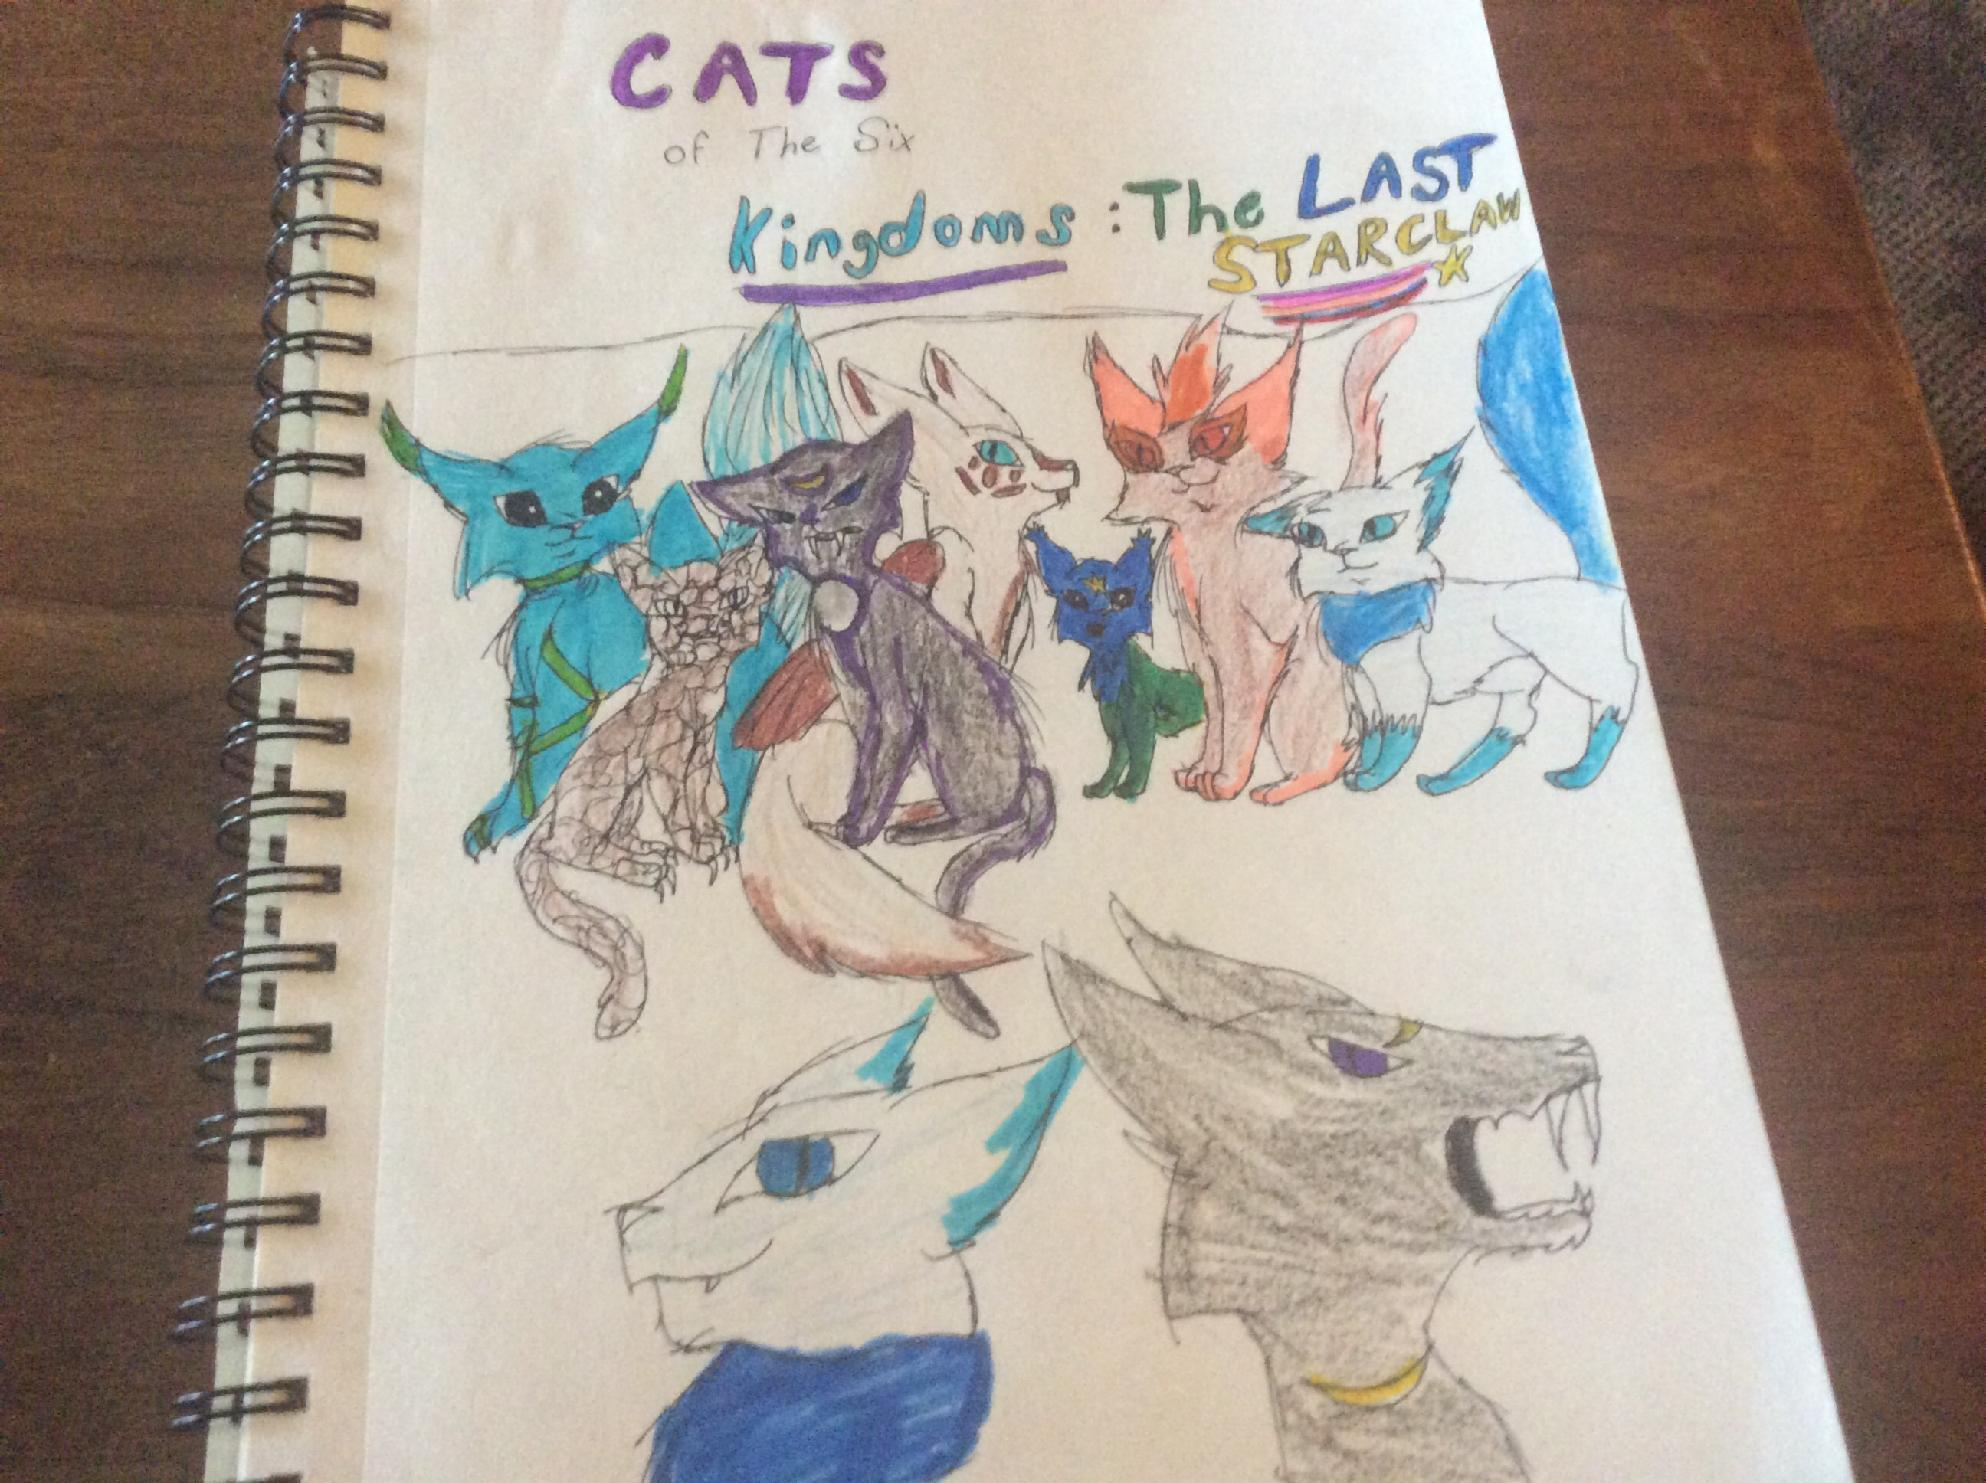 Cats of the six kingdoms; The last Starclaw-comic